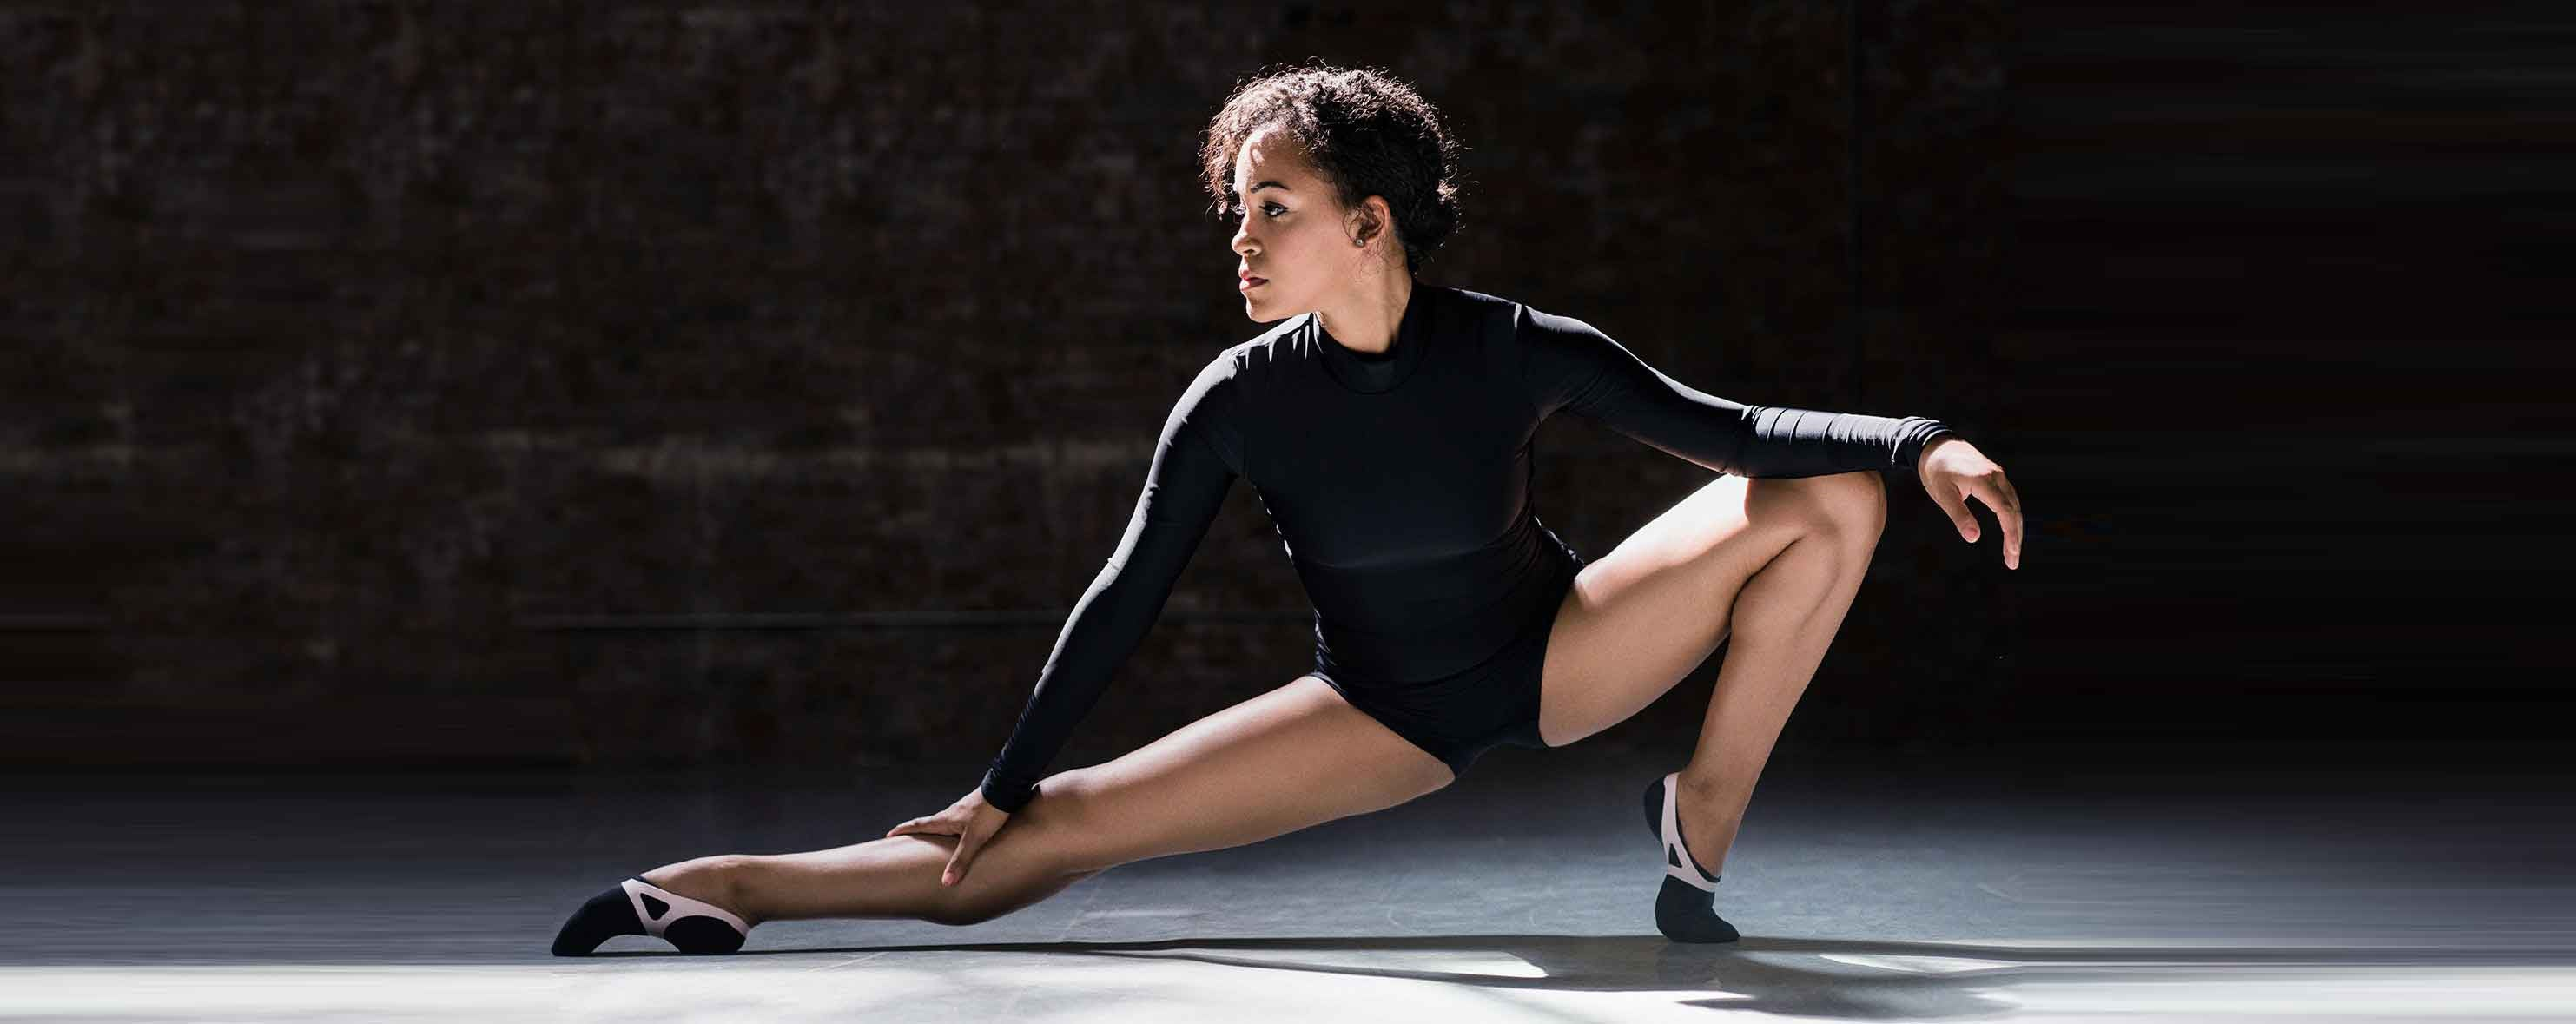 Capezio Arch & Capezio Extend on Dancer Allison H21U